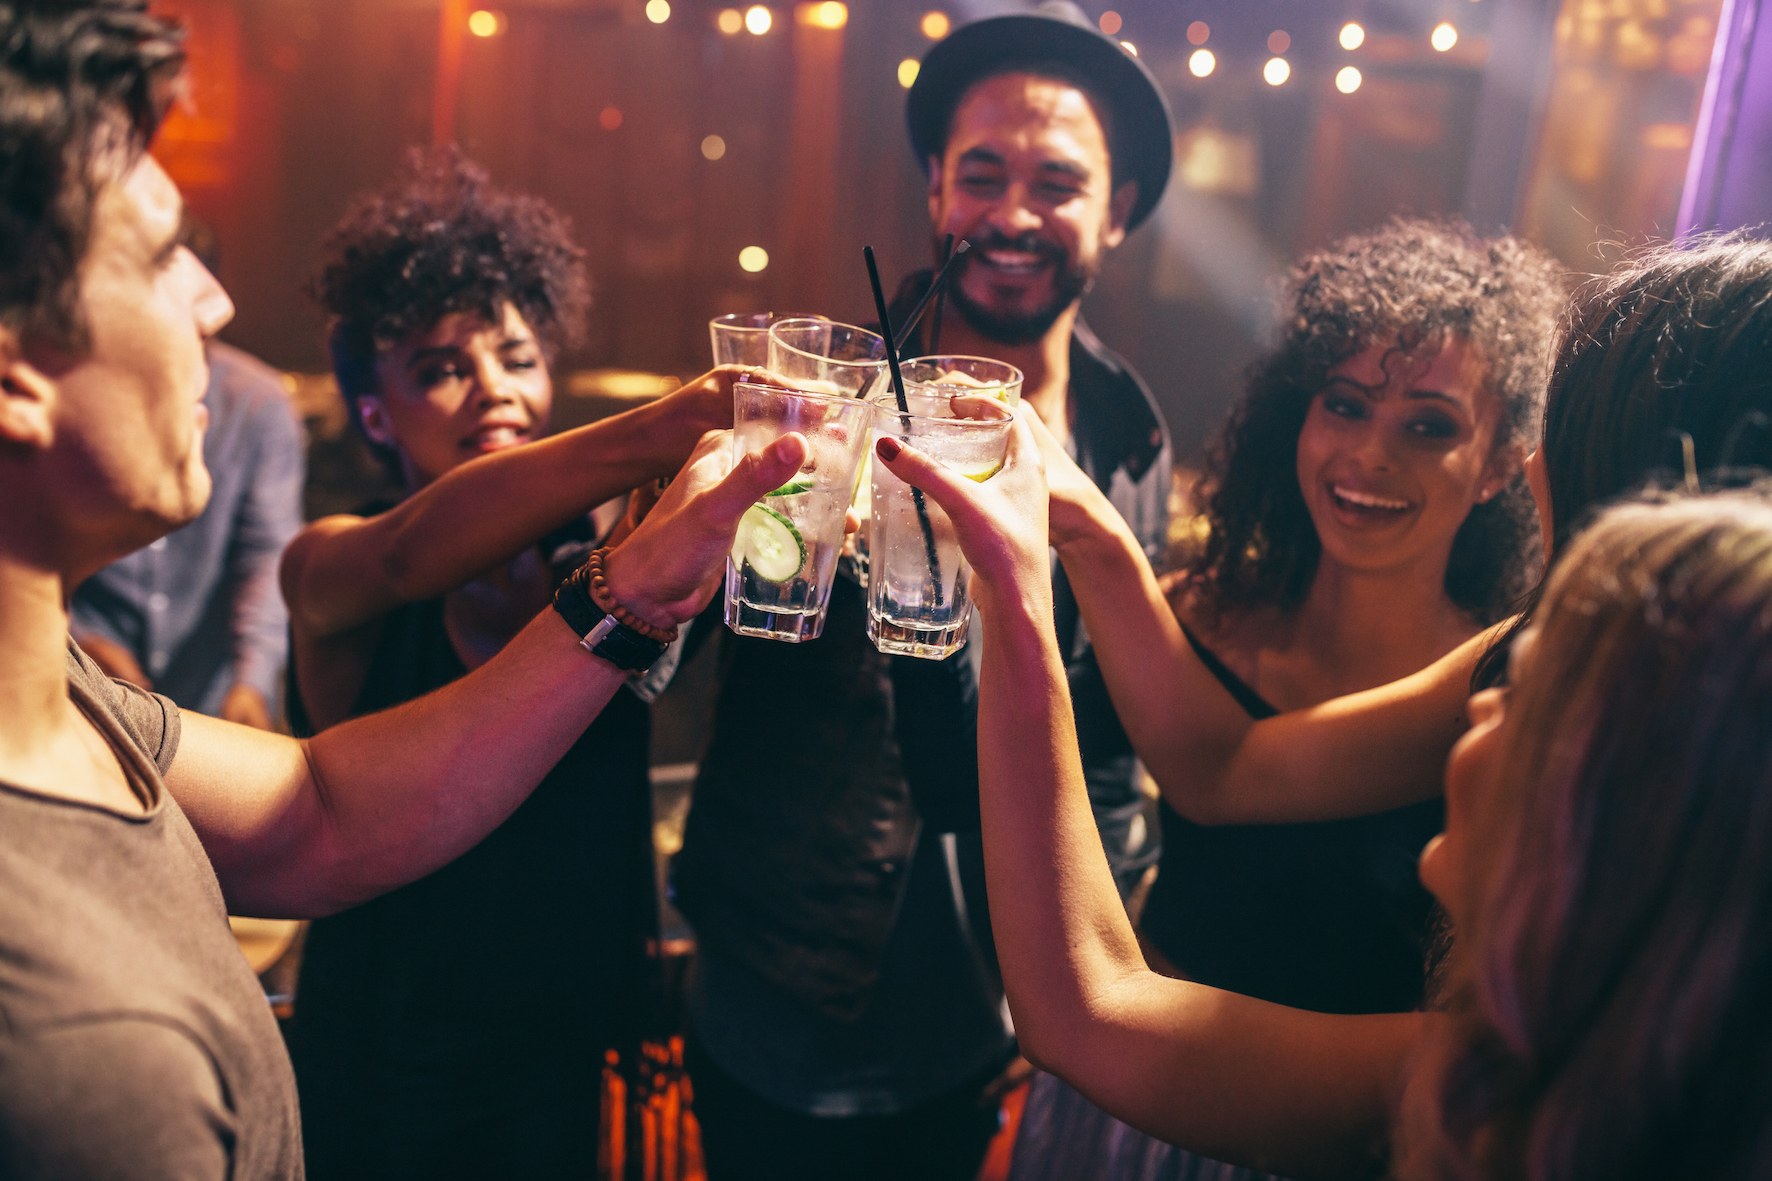 New research has found that binge drinking in college students has caused distinctive changes in brain activity.